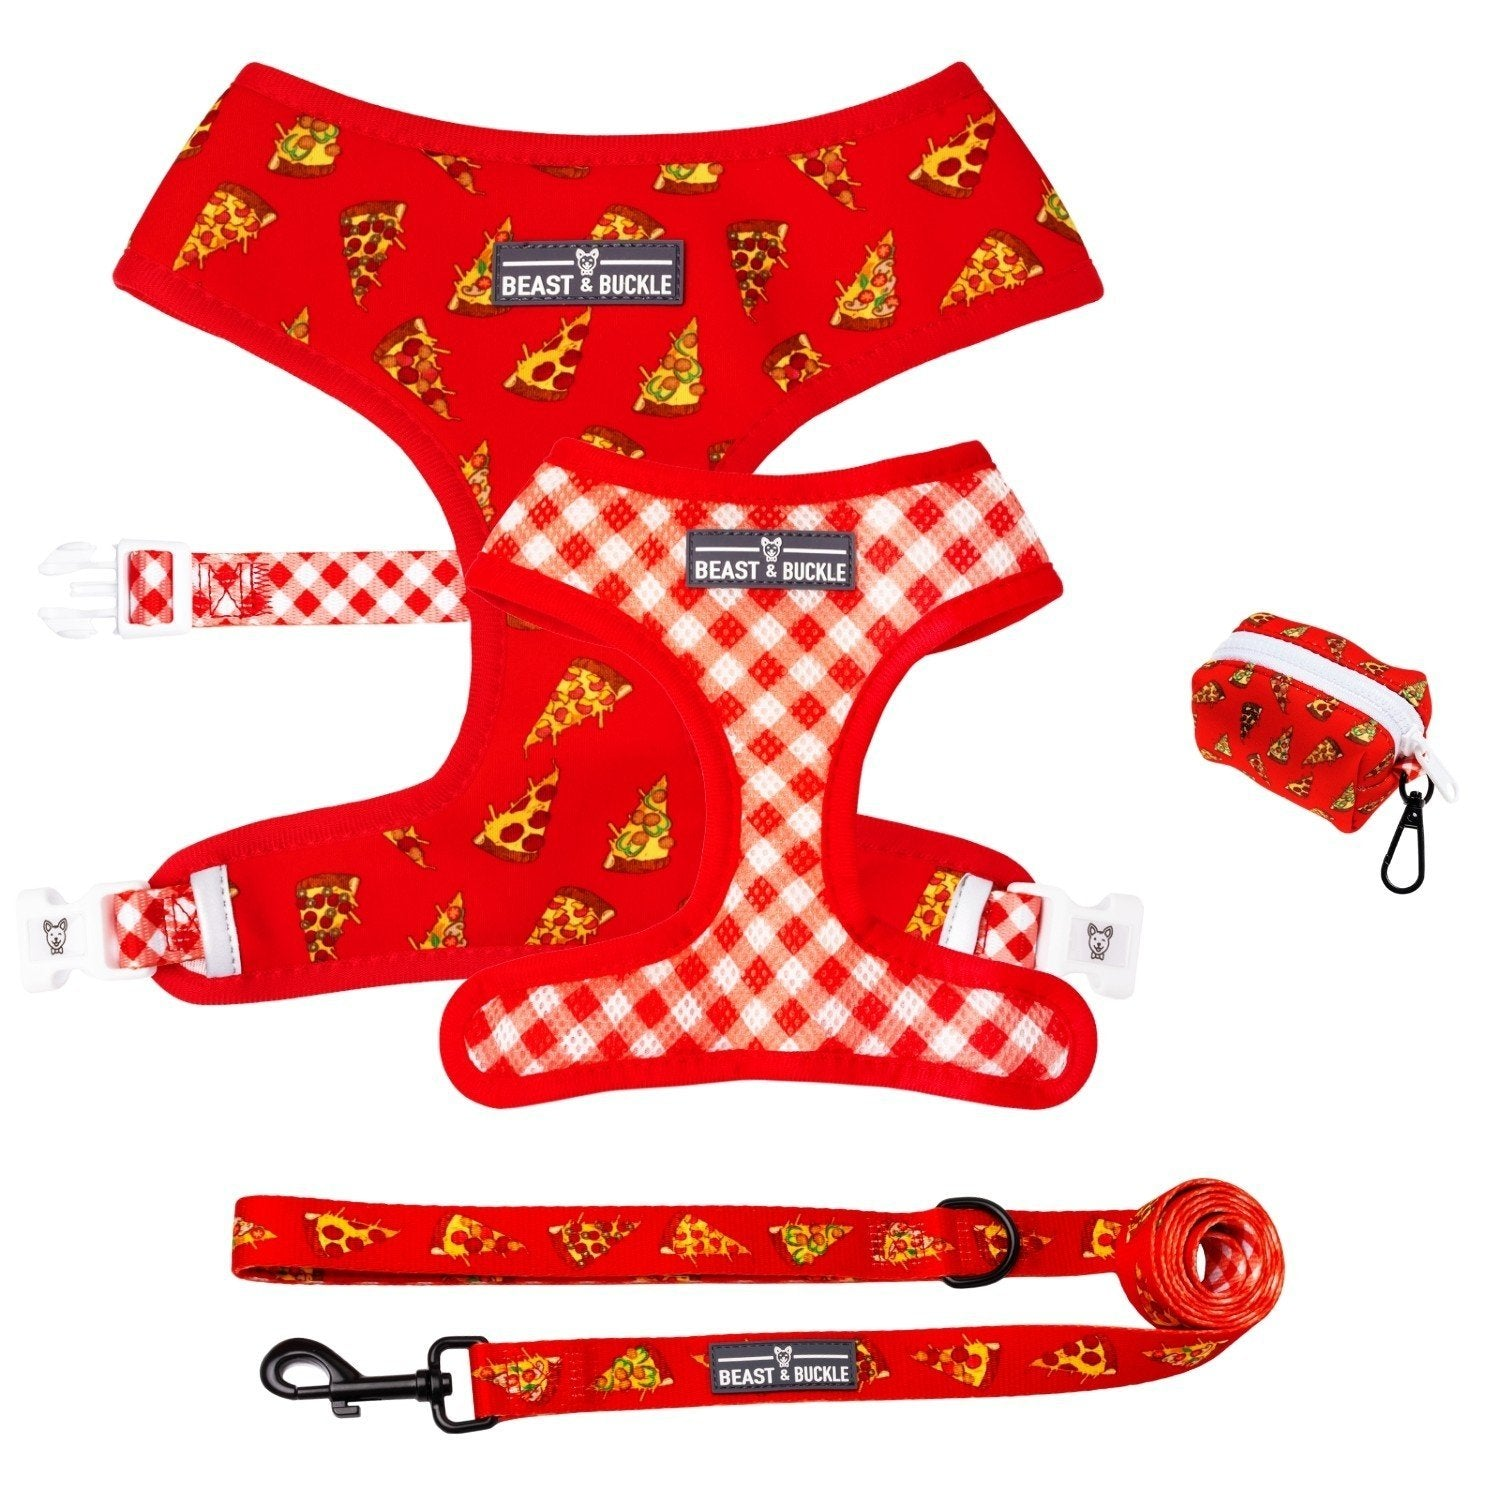 Pizza Walking Bundle - Beast & Buckle